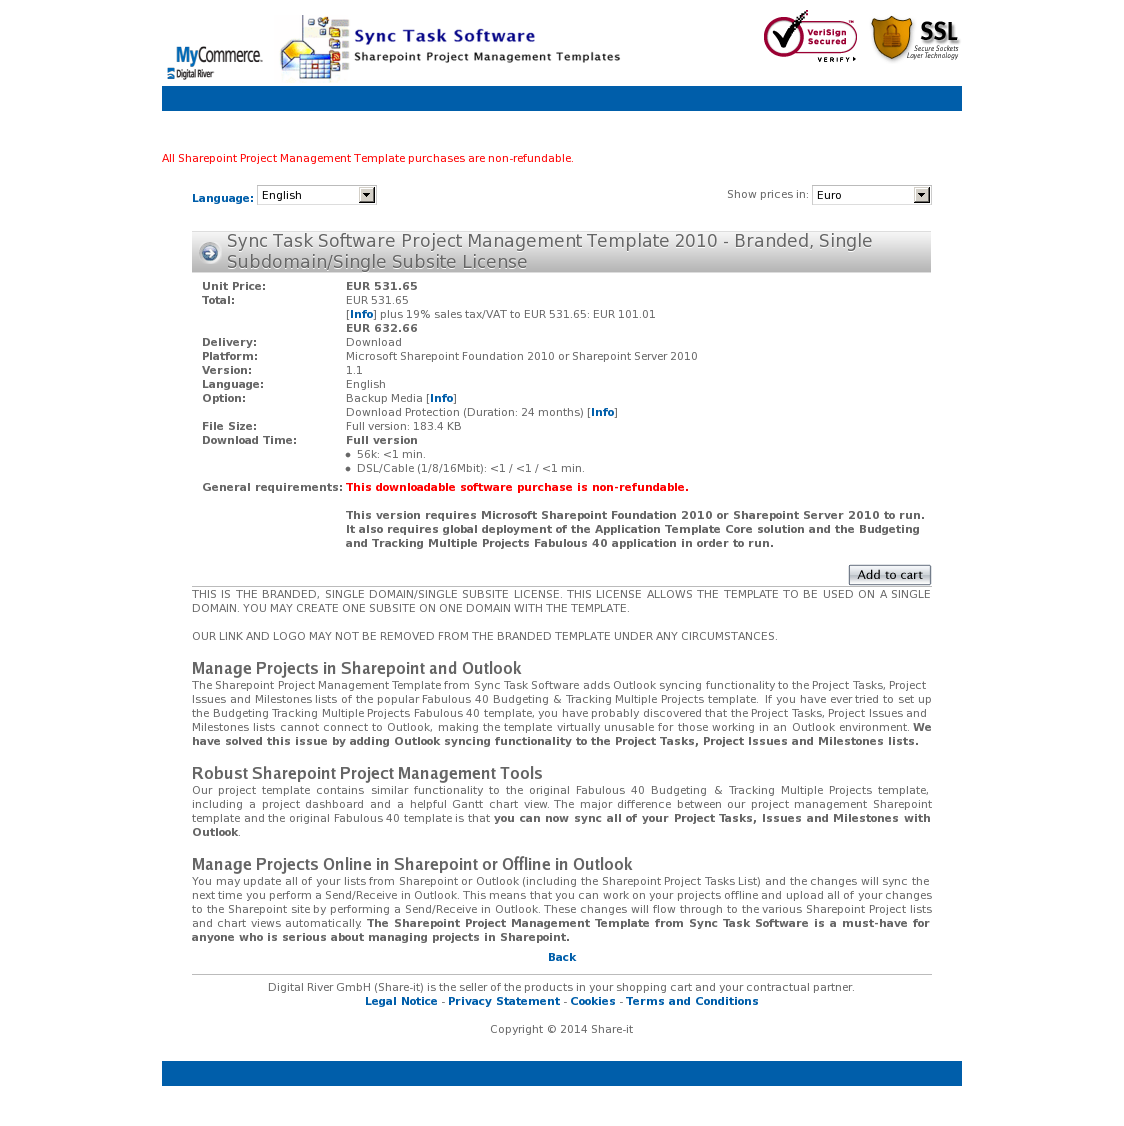 Sync Task Software Project Management Template 2010 - Branded, Single Subdomain/Single Subsite License